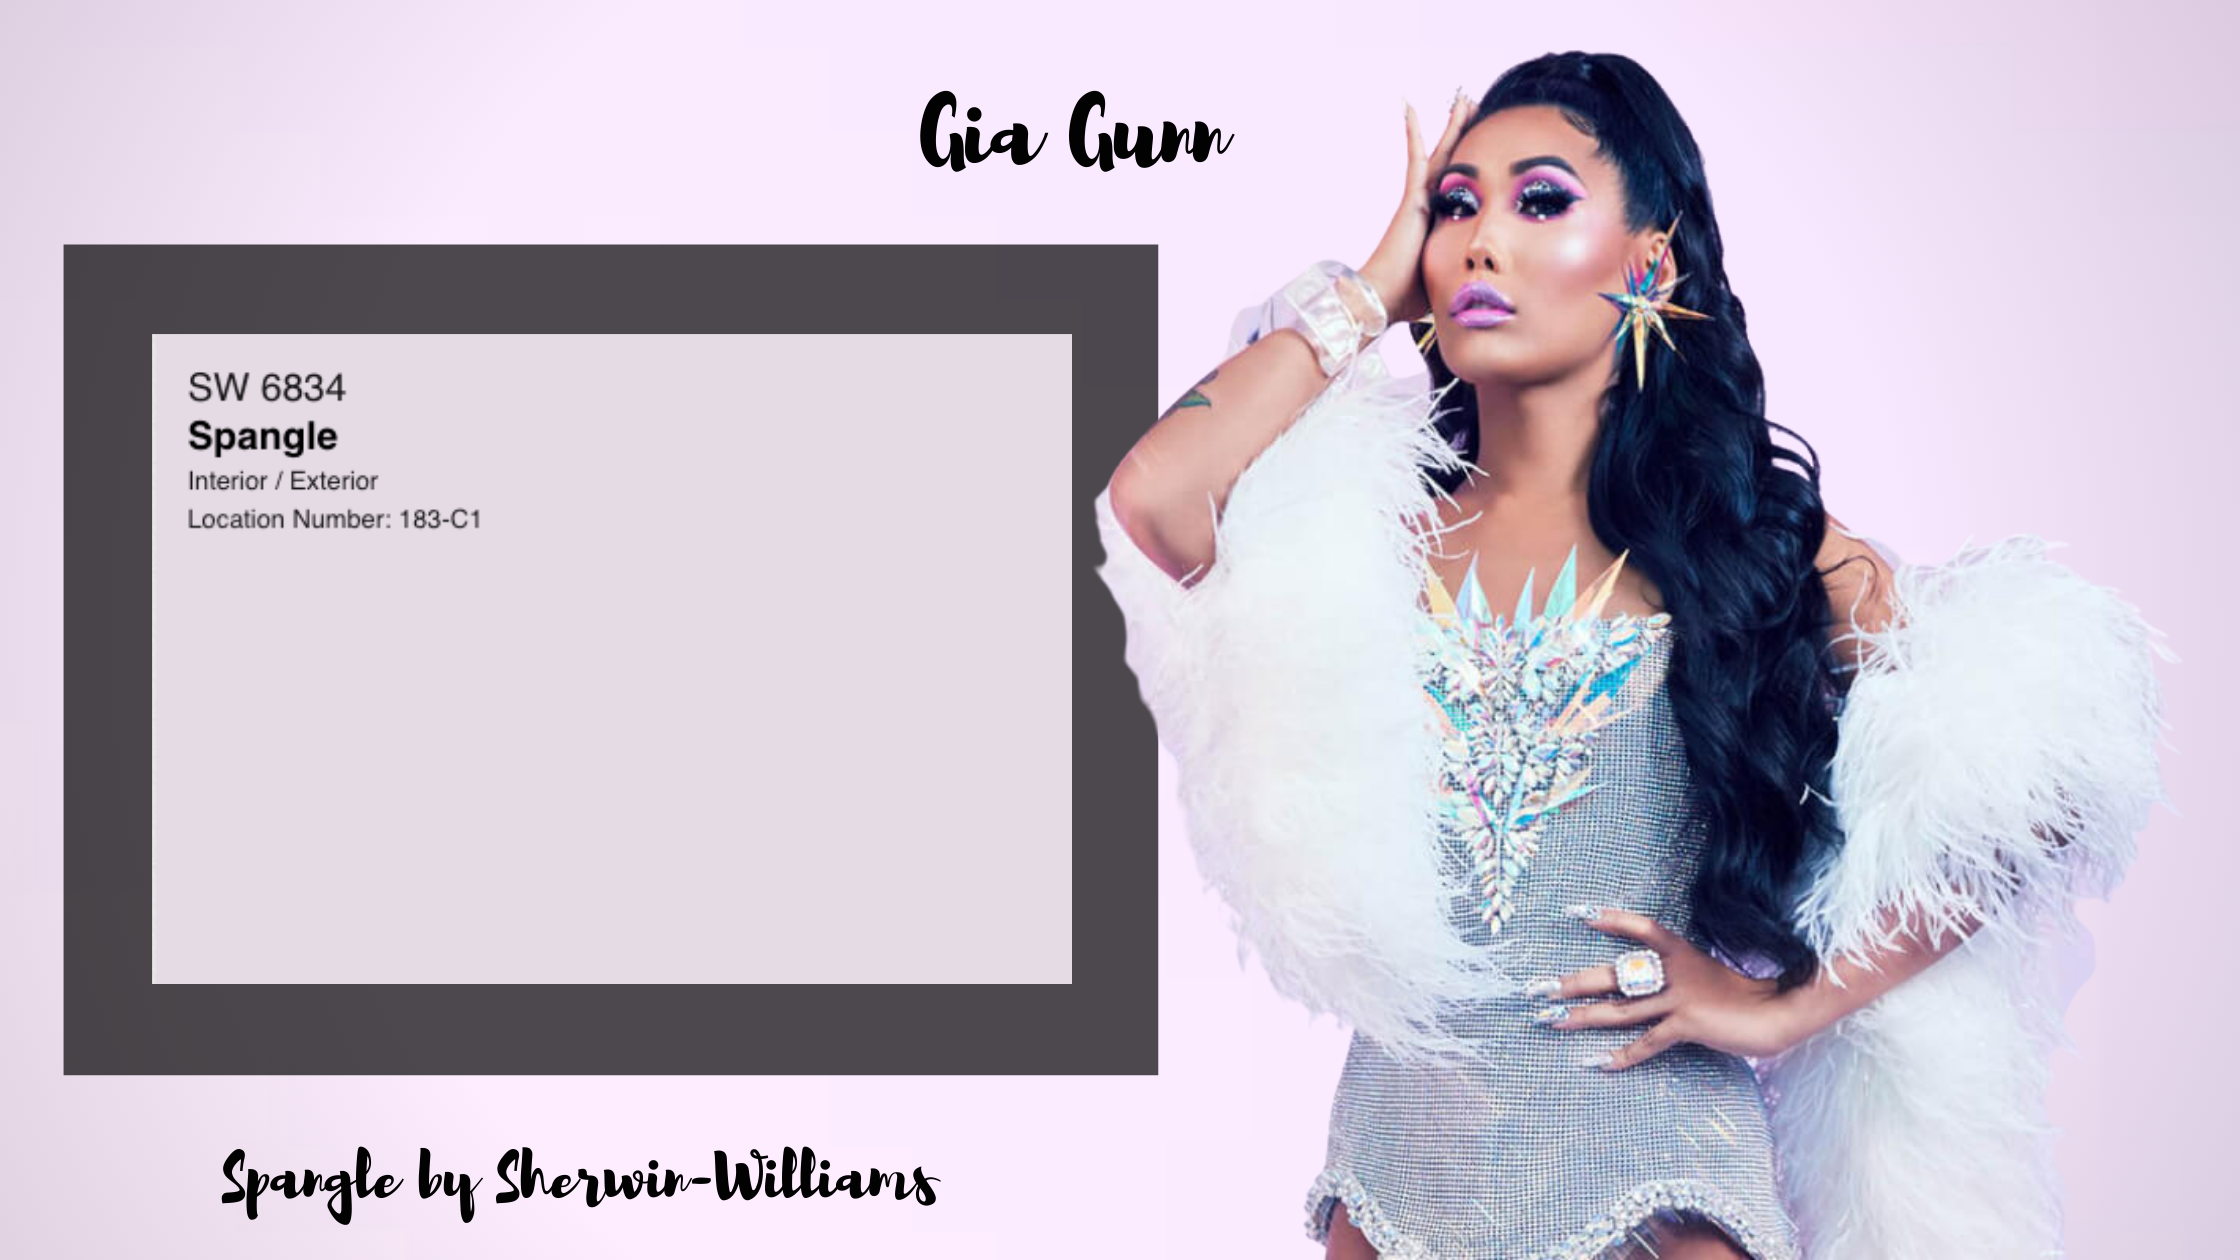 Drag Queen Gia Gunn and paint color Spangle by Sherwin-Williams